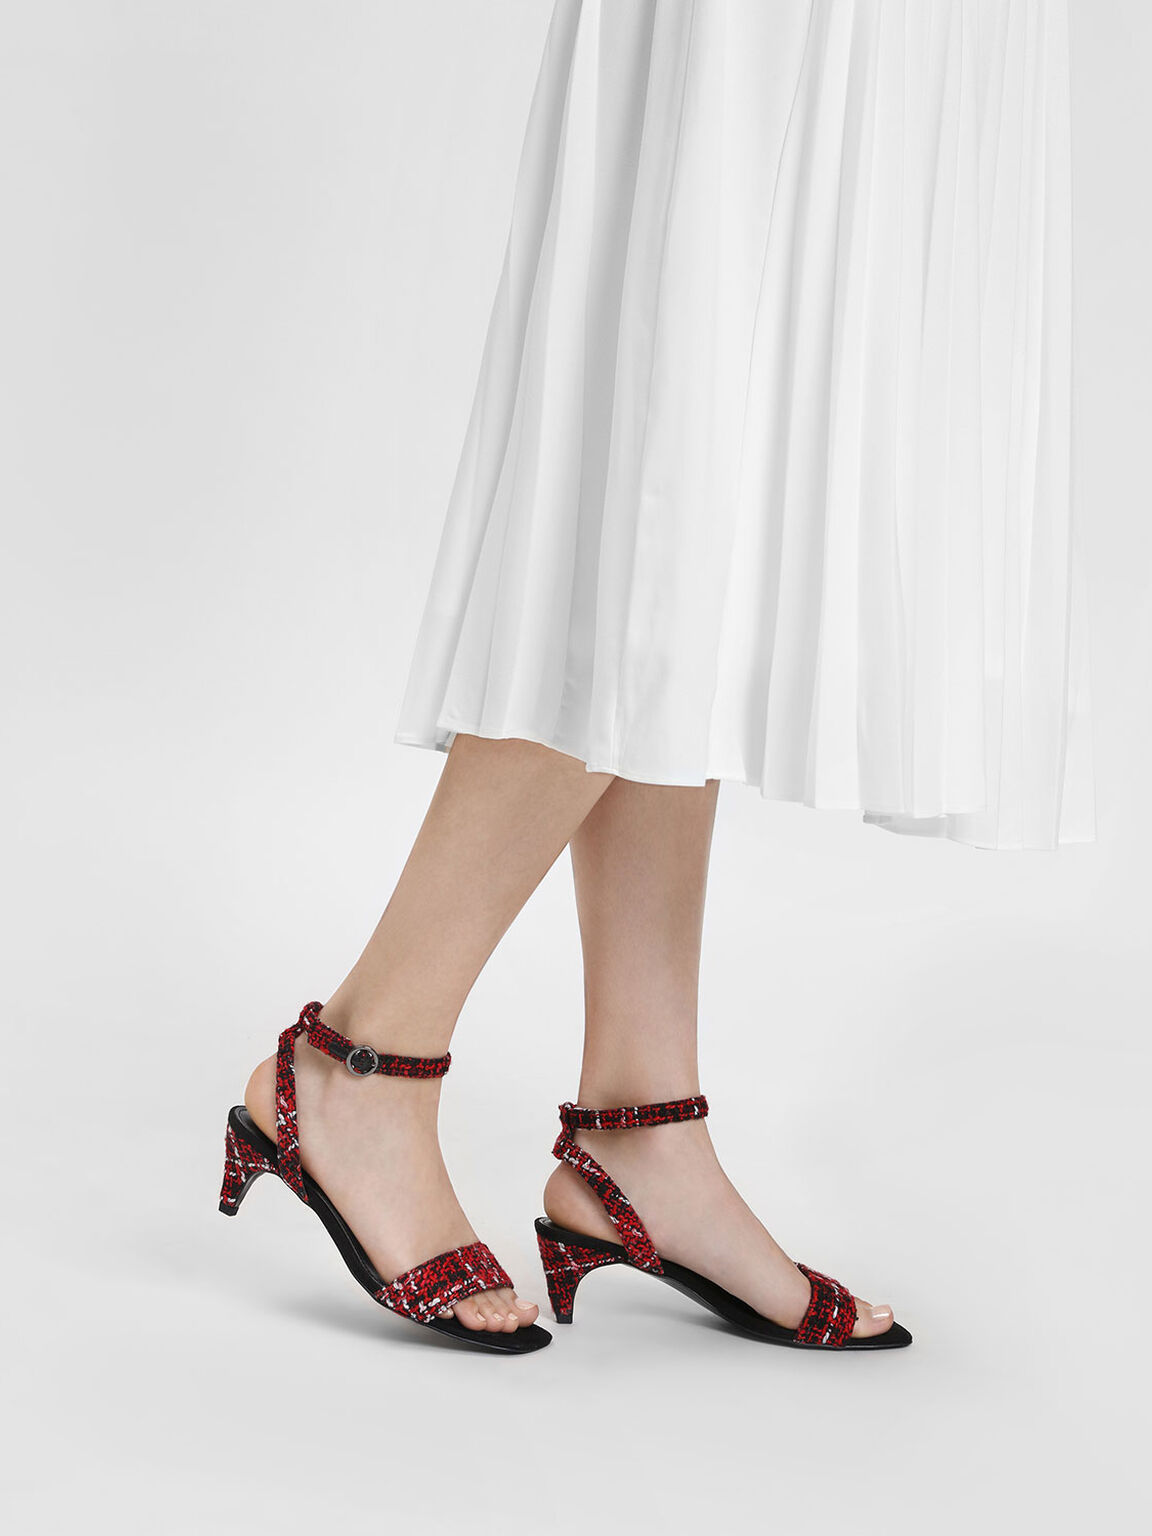 Classic Heeled Sandals, Red, hi-res